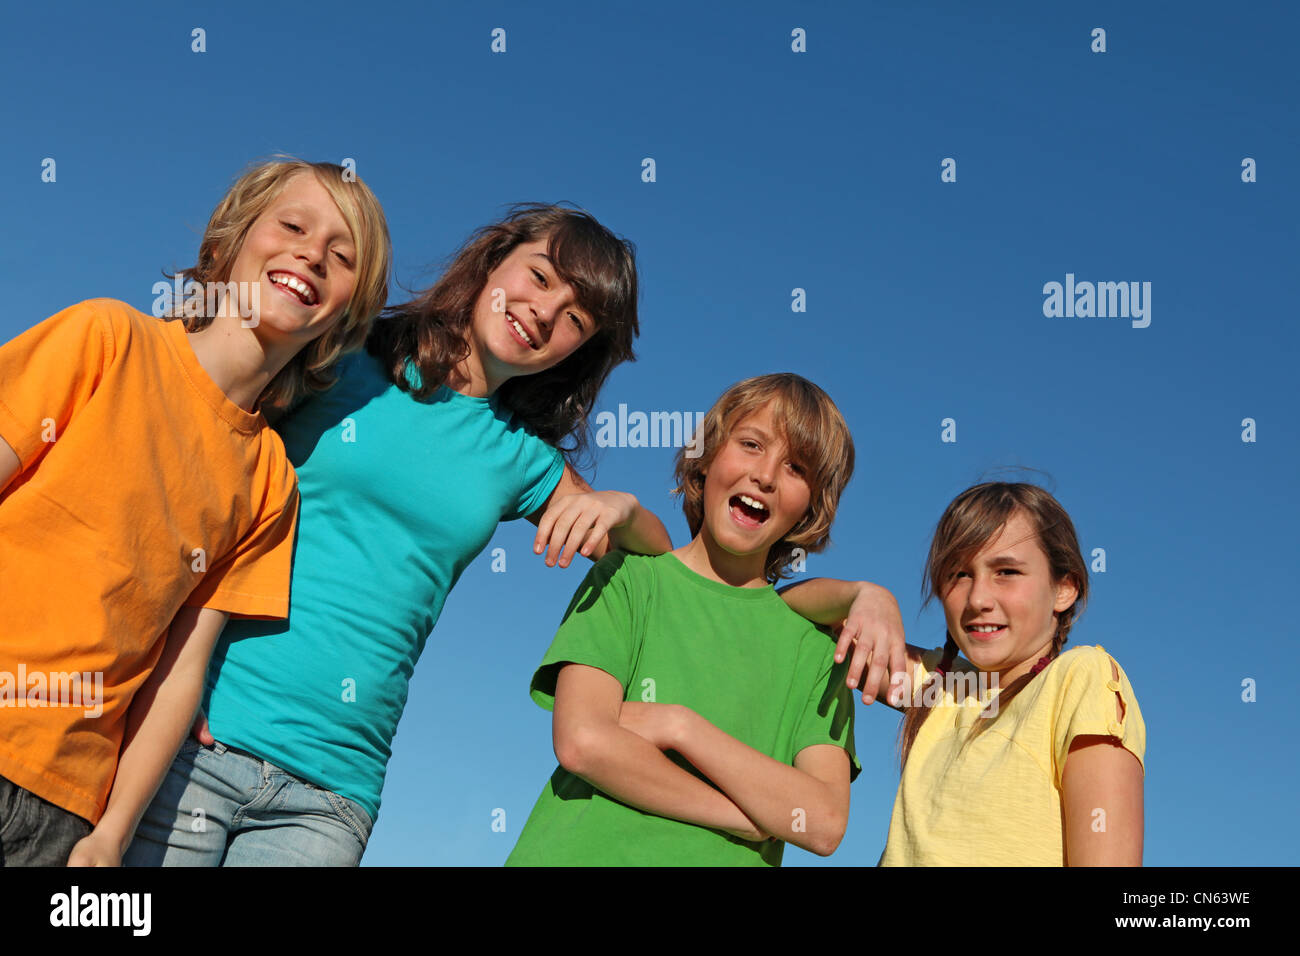 group of kids at summer school or camp - Stock Image